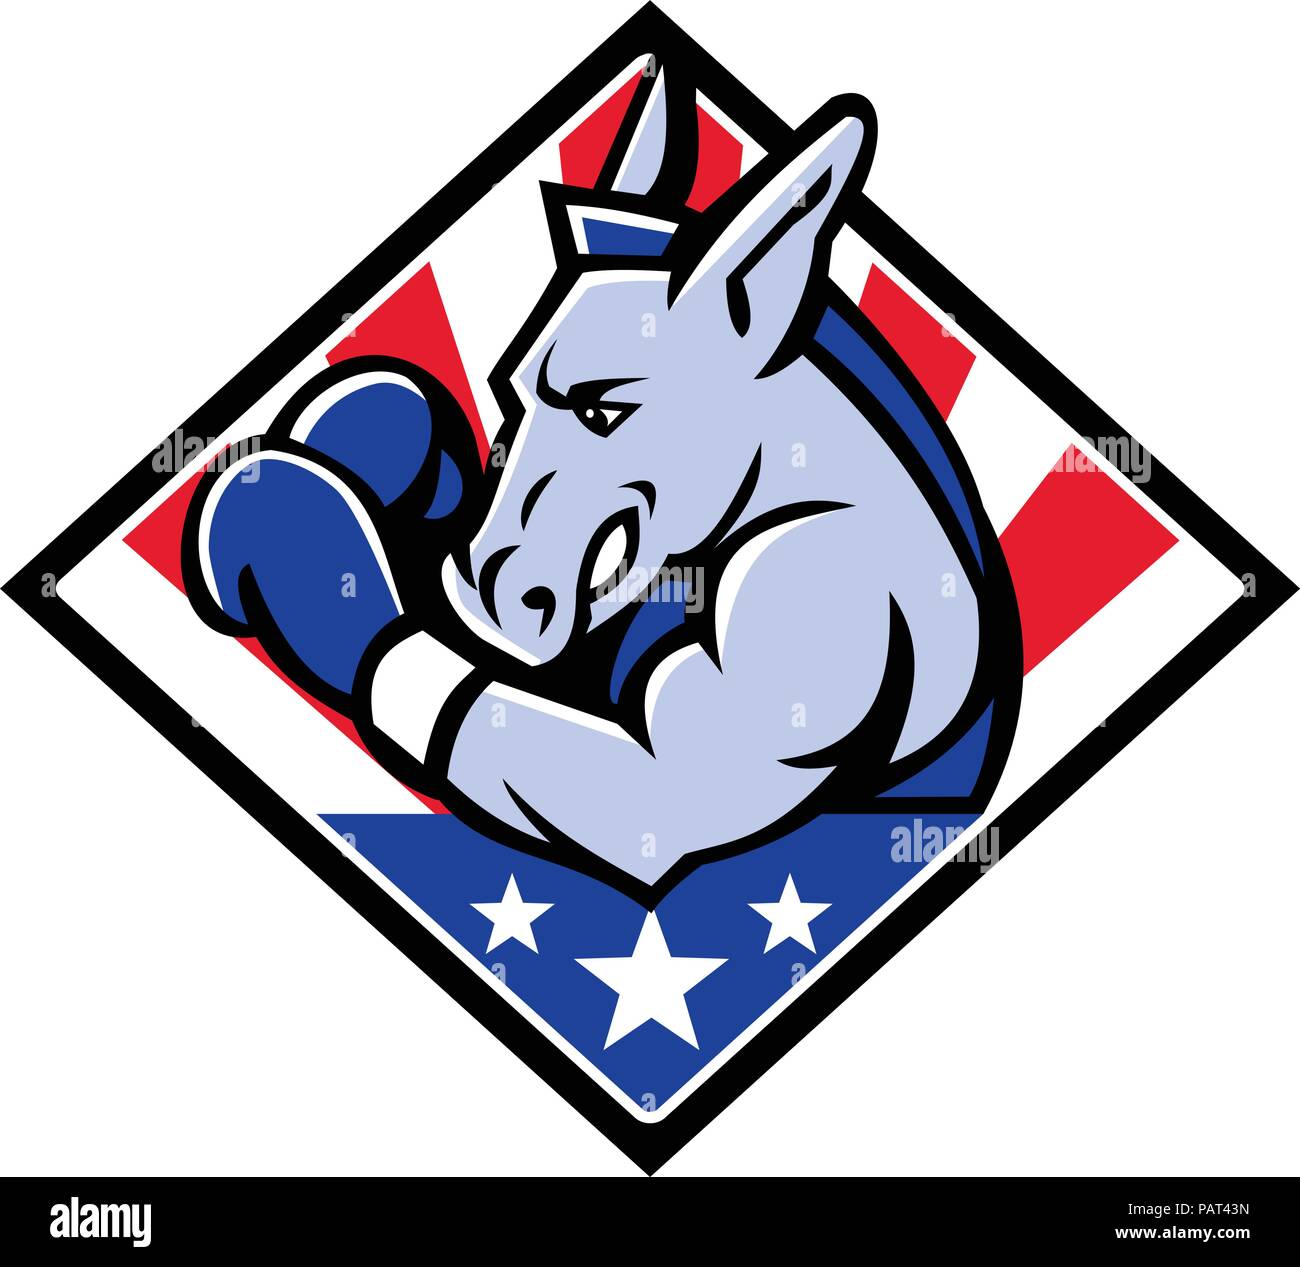 Mascot icon illustration of bust of an American democratic donkey boxing with USA stars and stripes, star spangled banner flag viewed from side set in - Stock Image